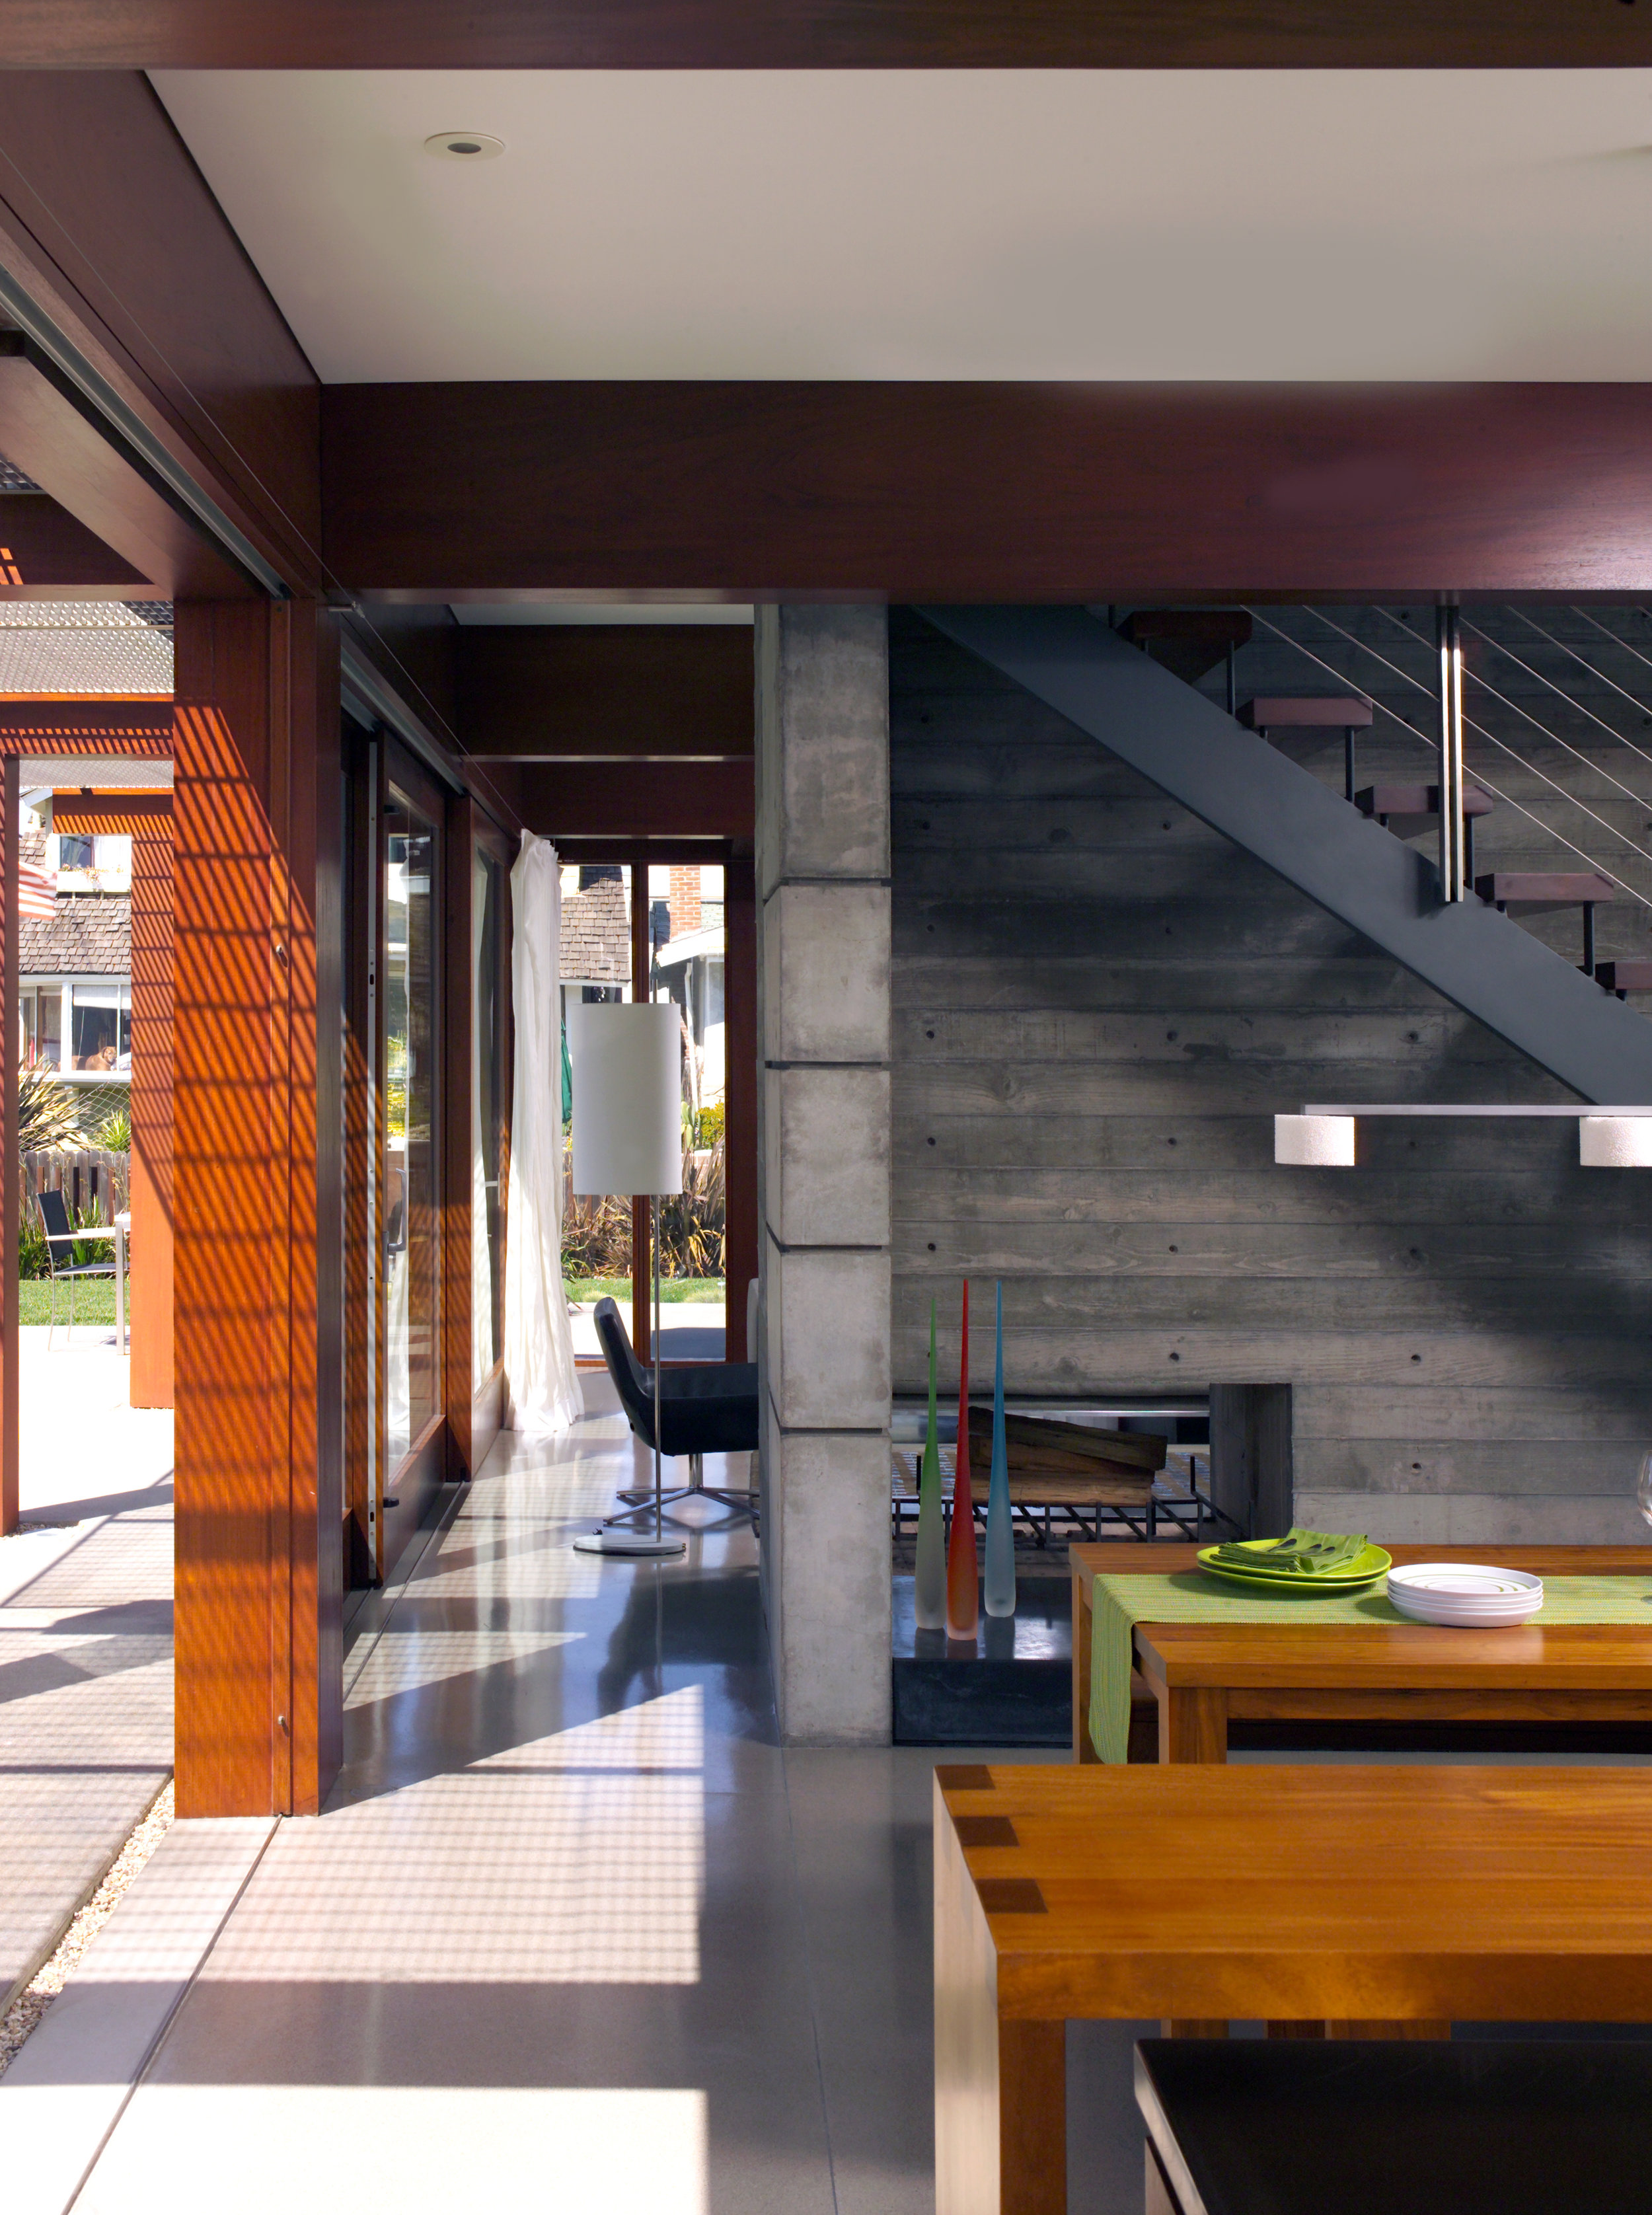 S.E.A.-Studio-Environmental-Architecture-David-Hertz-FAIA-Strand-House-Hermosa-Beach-sustainable-regenerative-restorative-design-residential-contemporary-modern-passive-systems-recycled-wood-concrete-green-building-South-Bay-ocean-view-studioea-12.jpg